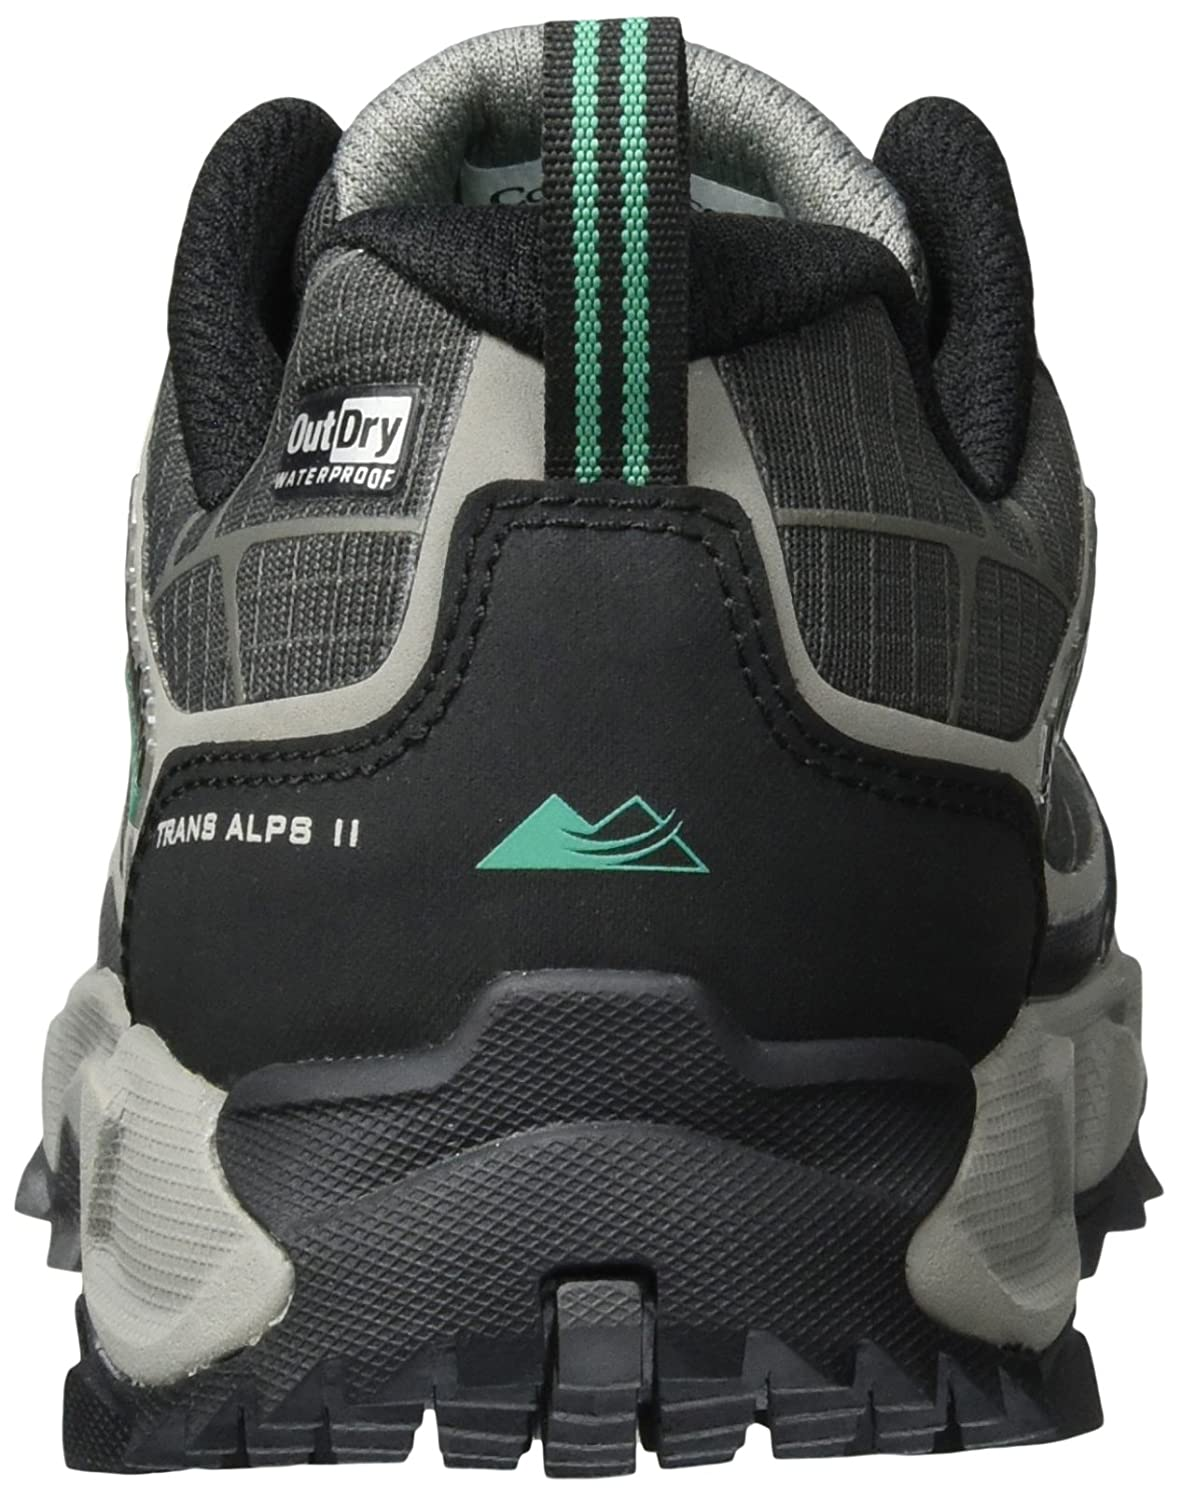 Trans Columbia Ii Alps Ii OutdryChaussure Trans Alps Columbia yY7vfgb6